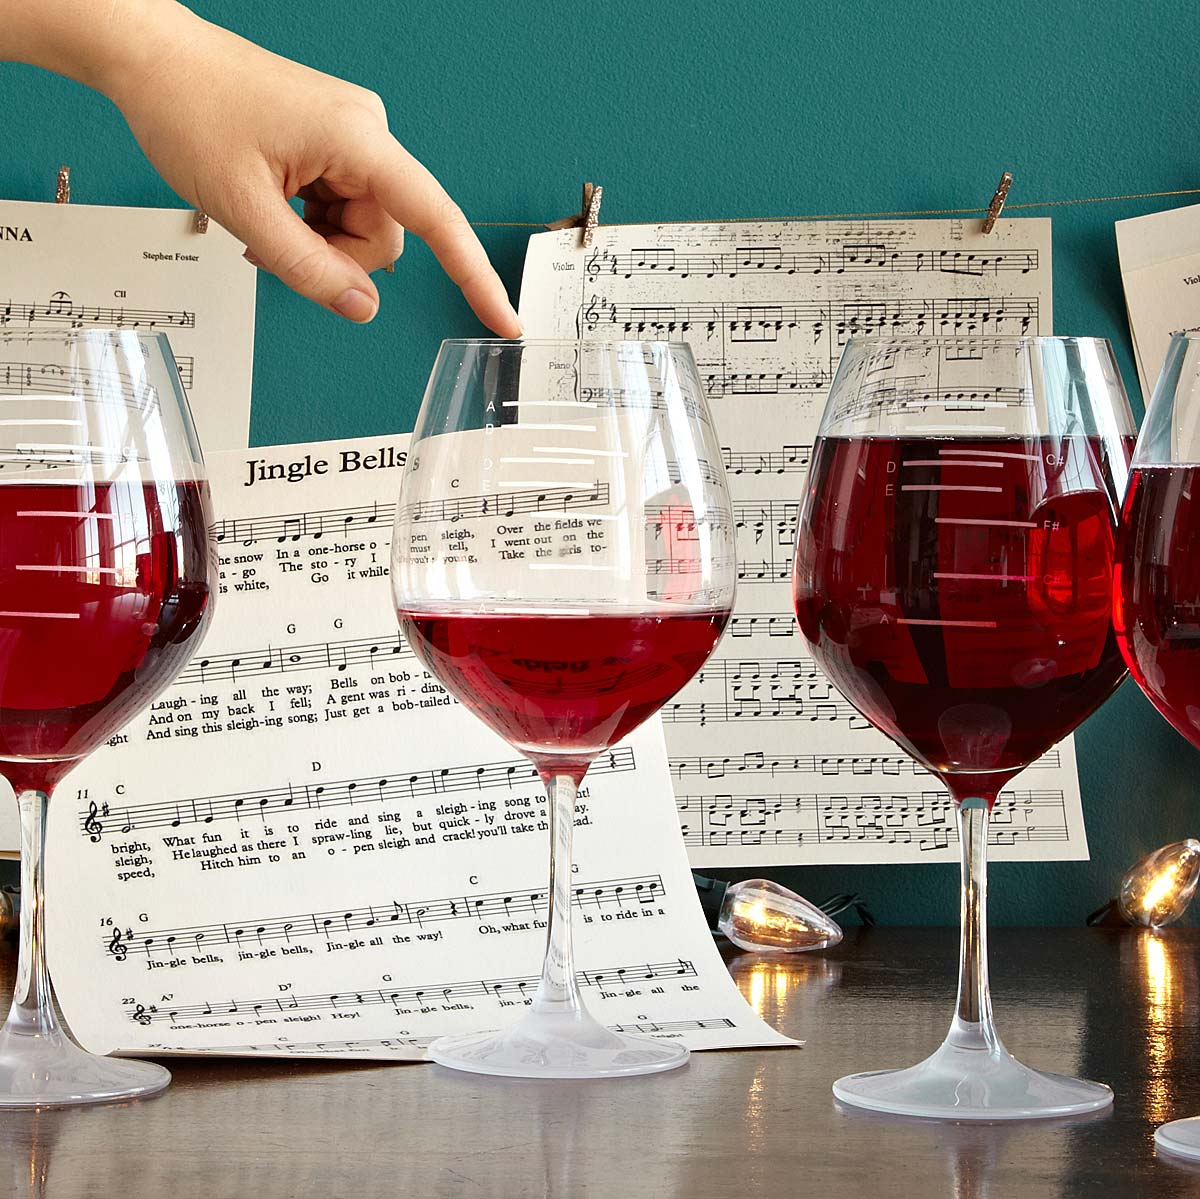 Musical Wine Gles Turn The Sophisticated Pleasures Of Drinking Into An Experience That S Memorable And Above All Fun